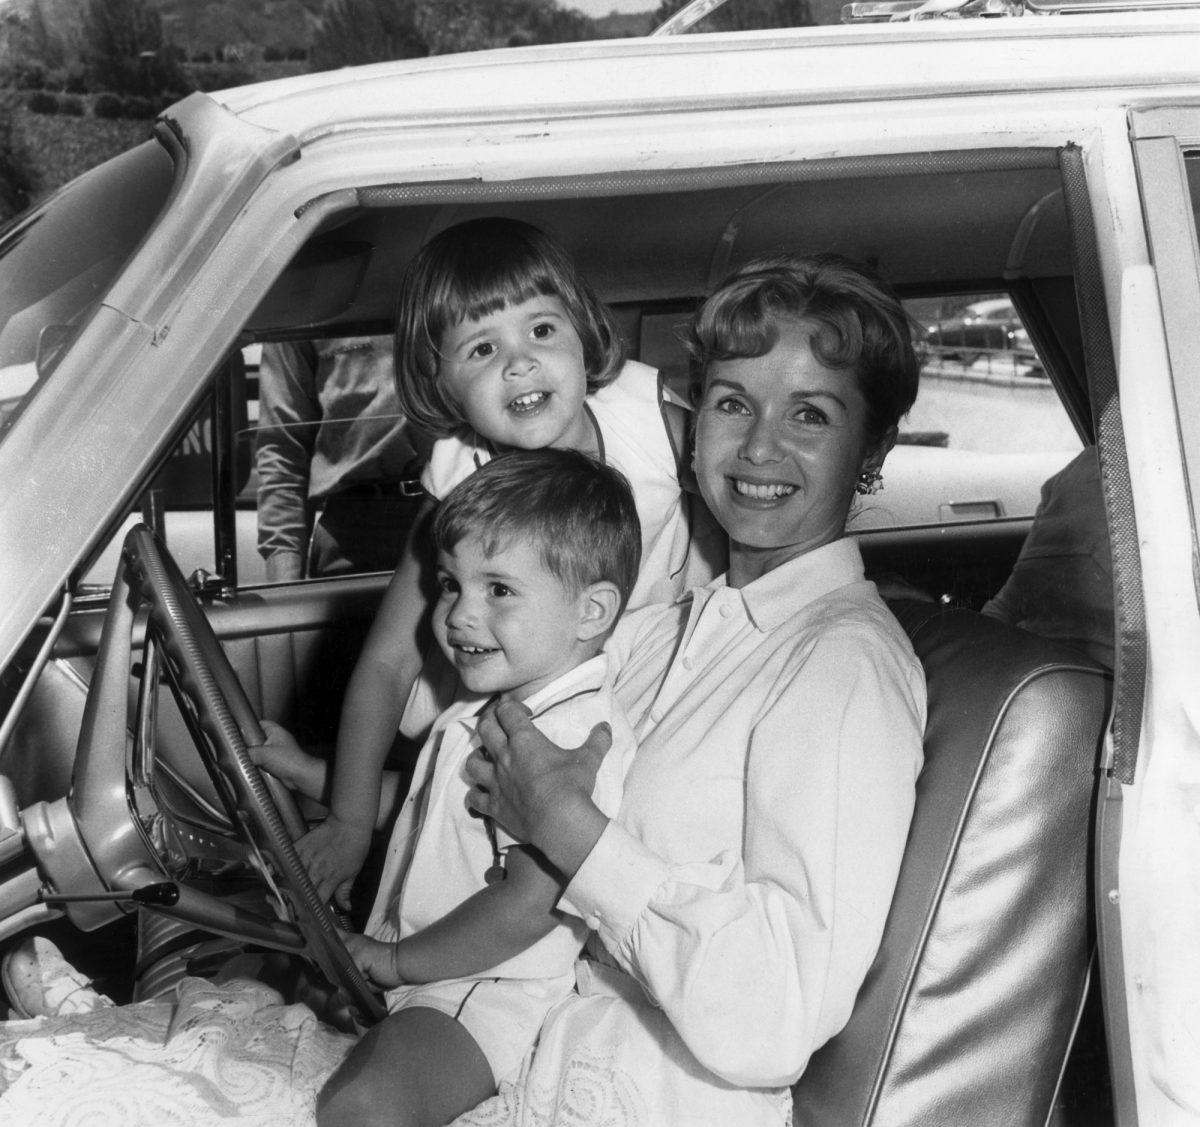 Carrie Fisher, Todd Fisher, and Debbie Reynolds